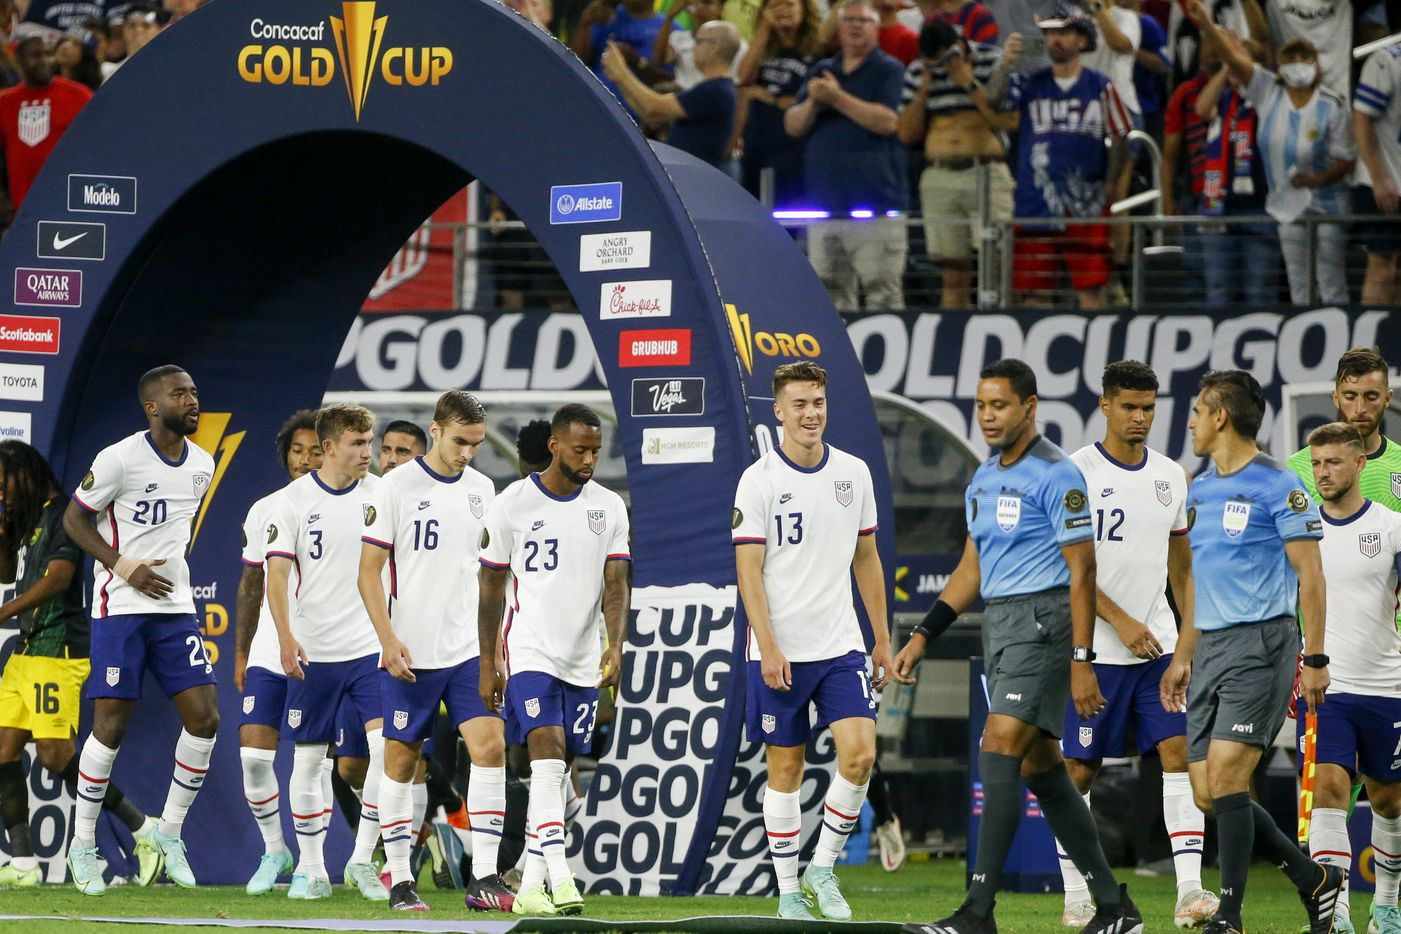 The USA men's national team enters the field before a CONCACAF Gold Cup quarterfinal soccer match against Jamaica at AT&T Stadium on Sunday, July 25, 2021, in Arlington. (Elias Valverde II/The Dallas Morning News)